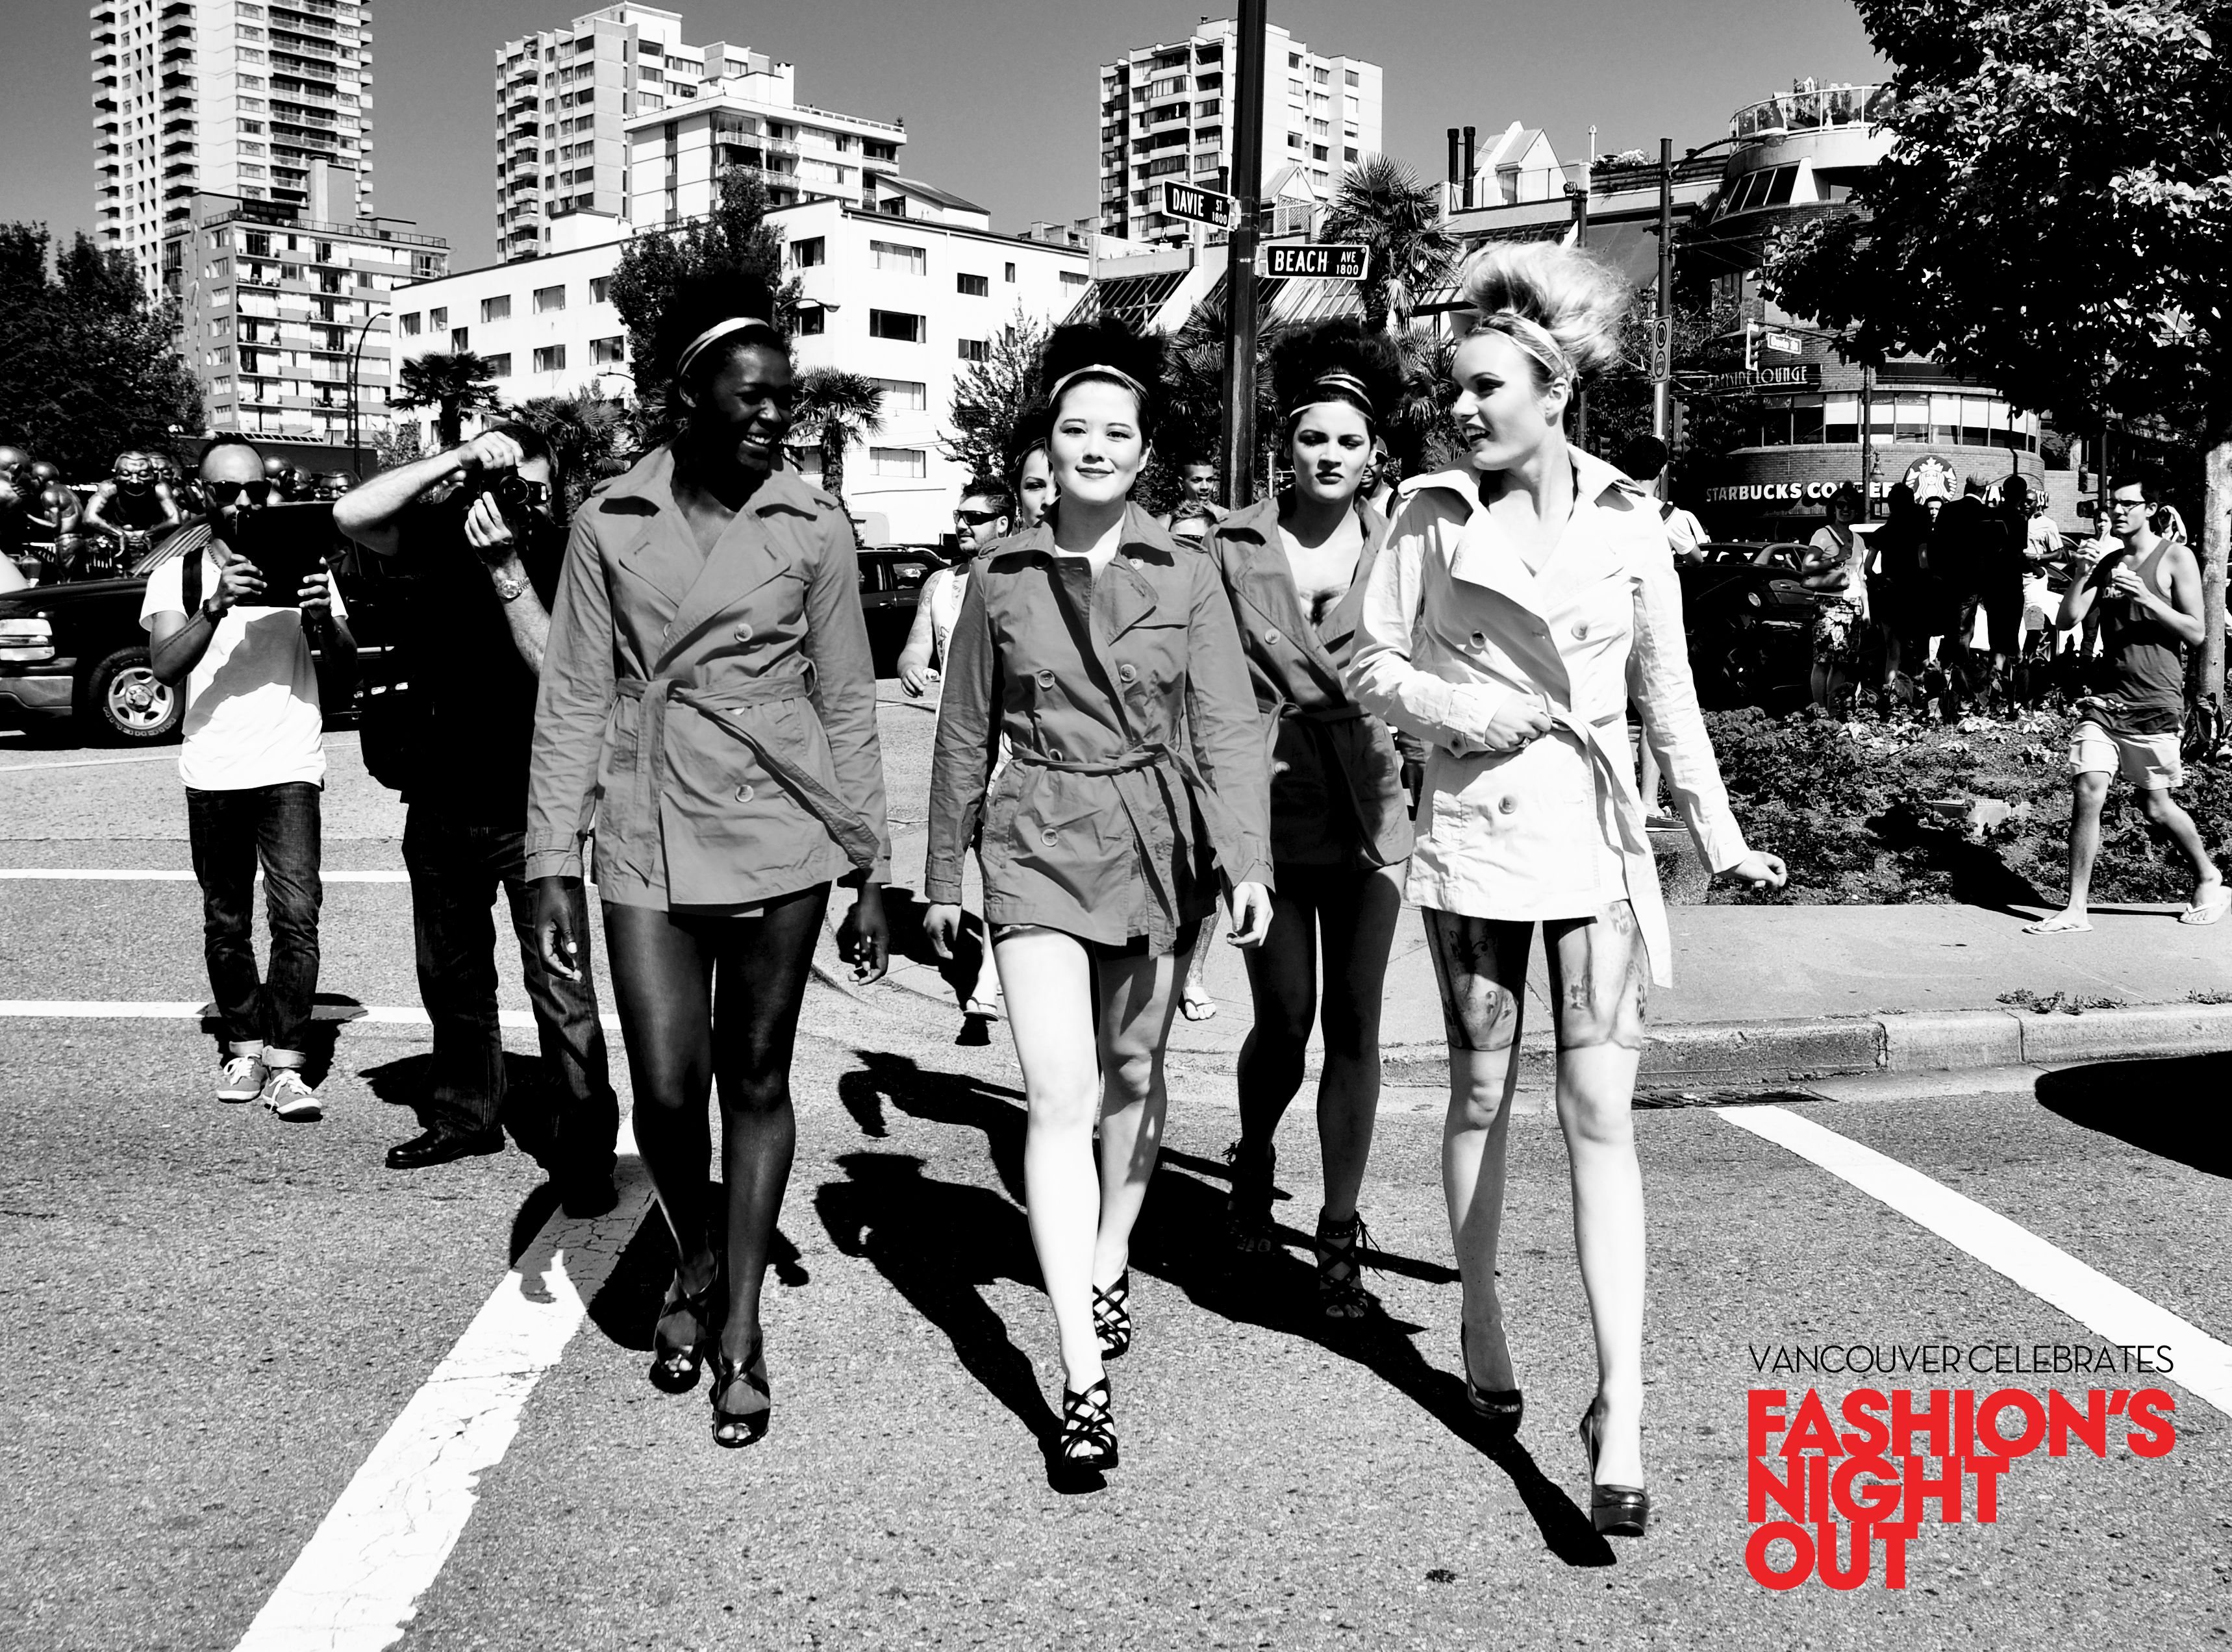 Crosswalk action #FNOV #fashion #models